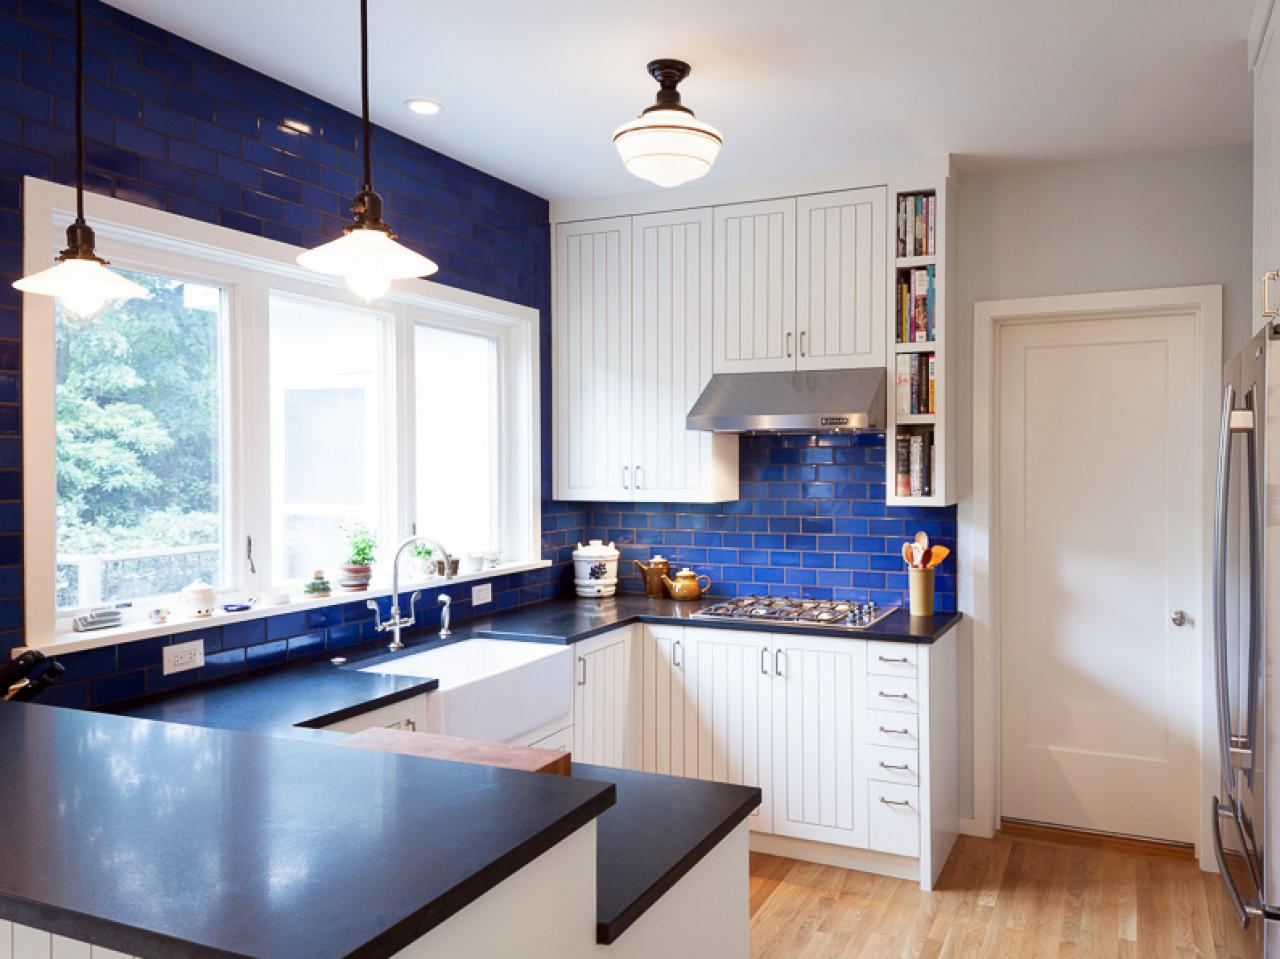 Beautiful Small Kitchen Designs for Tiny Space of a House ... on Small Kitchen Ideas  id=79412